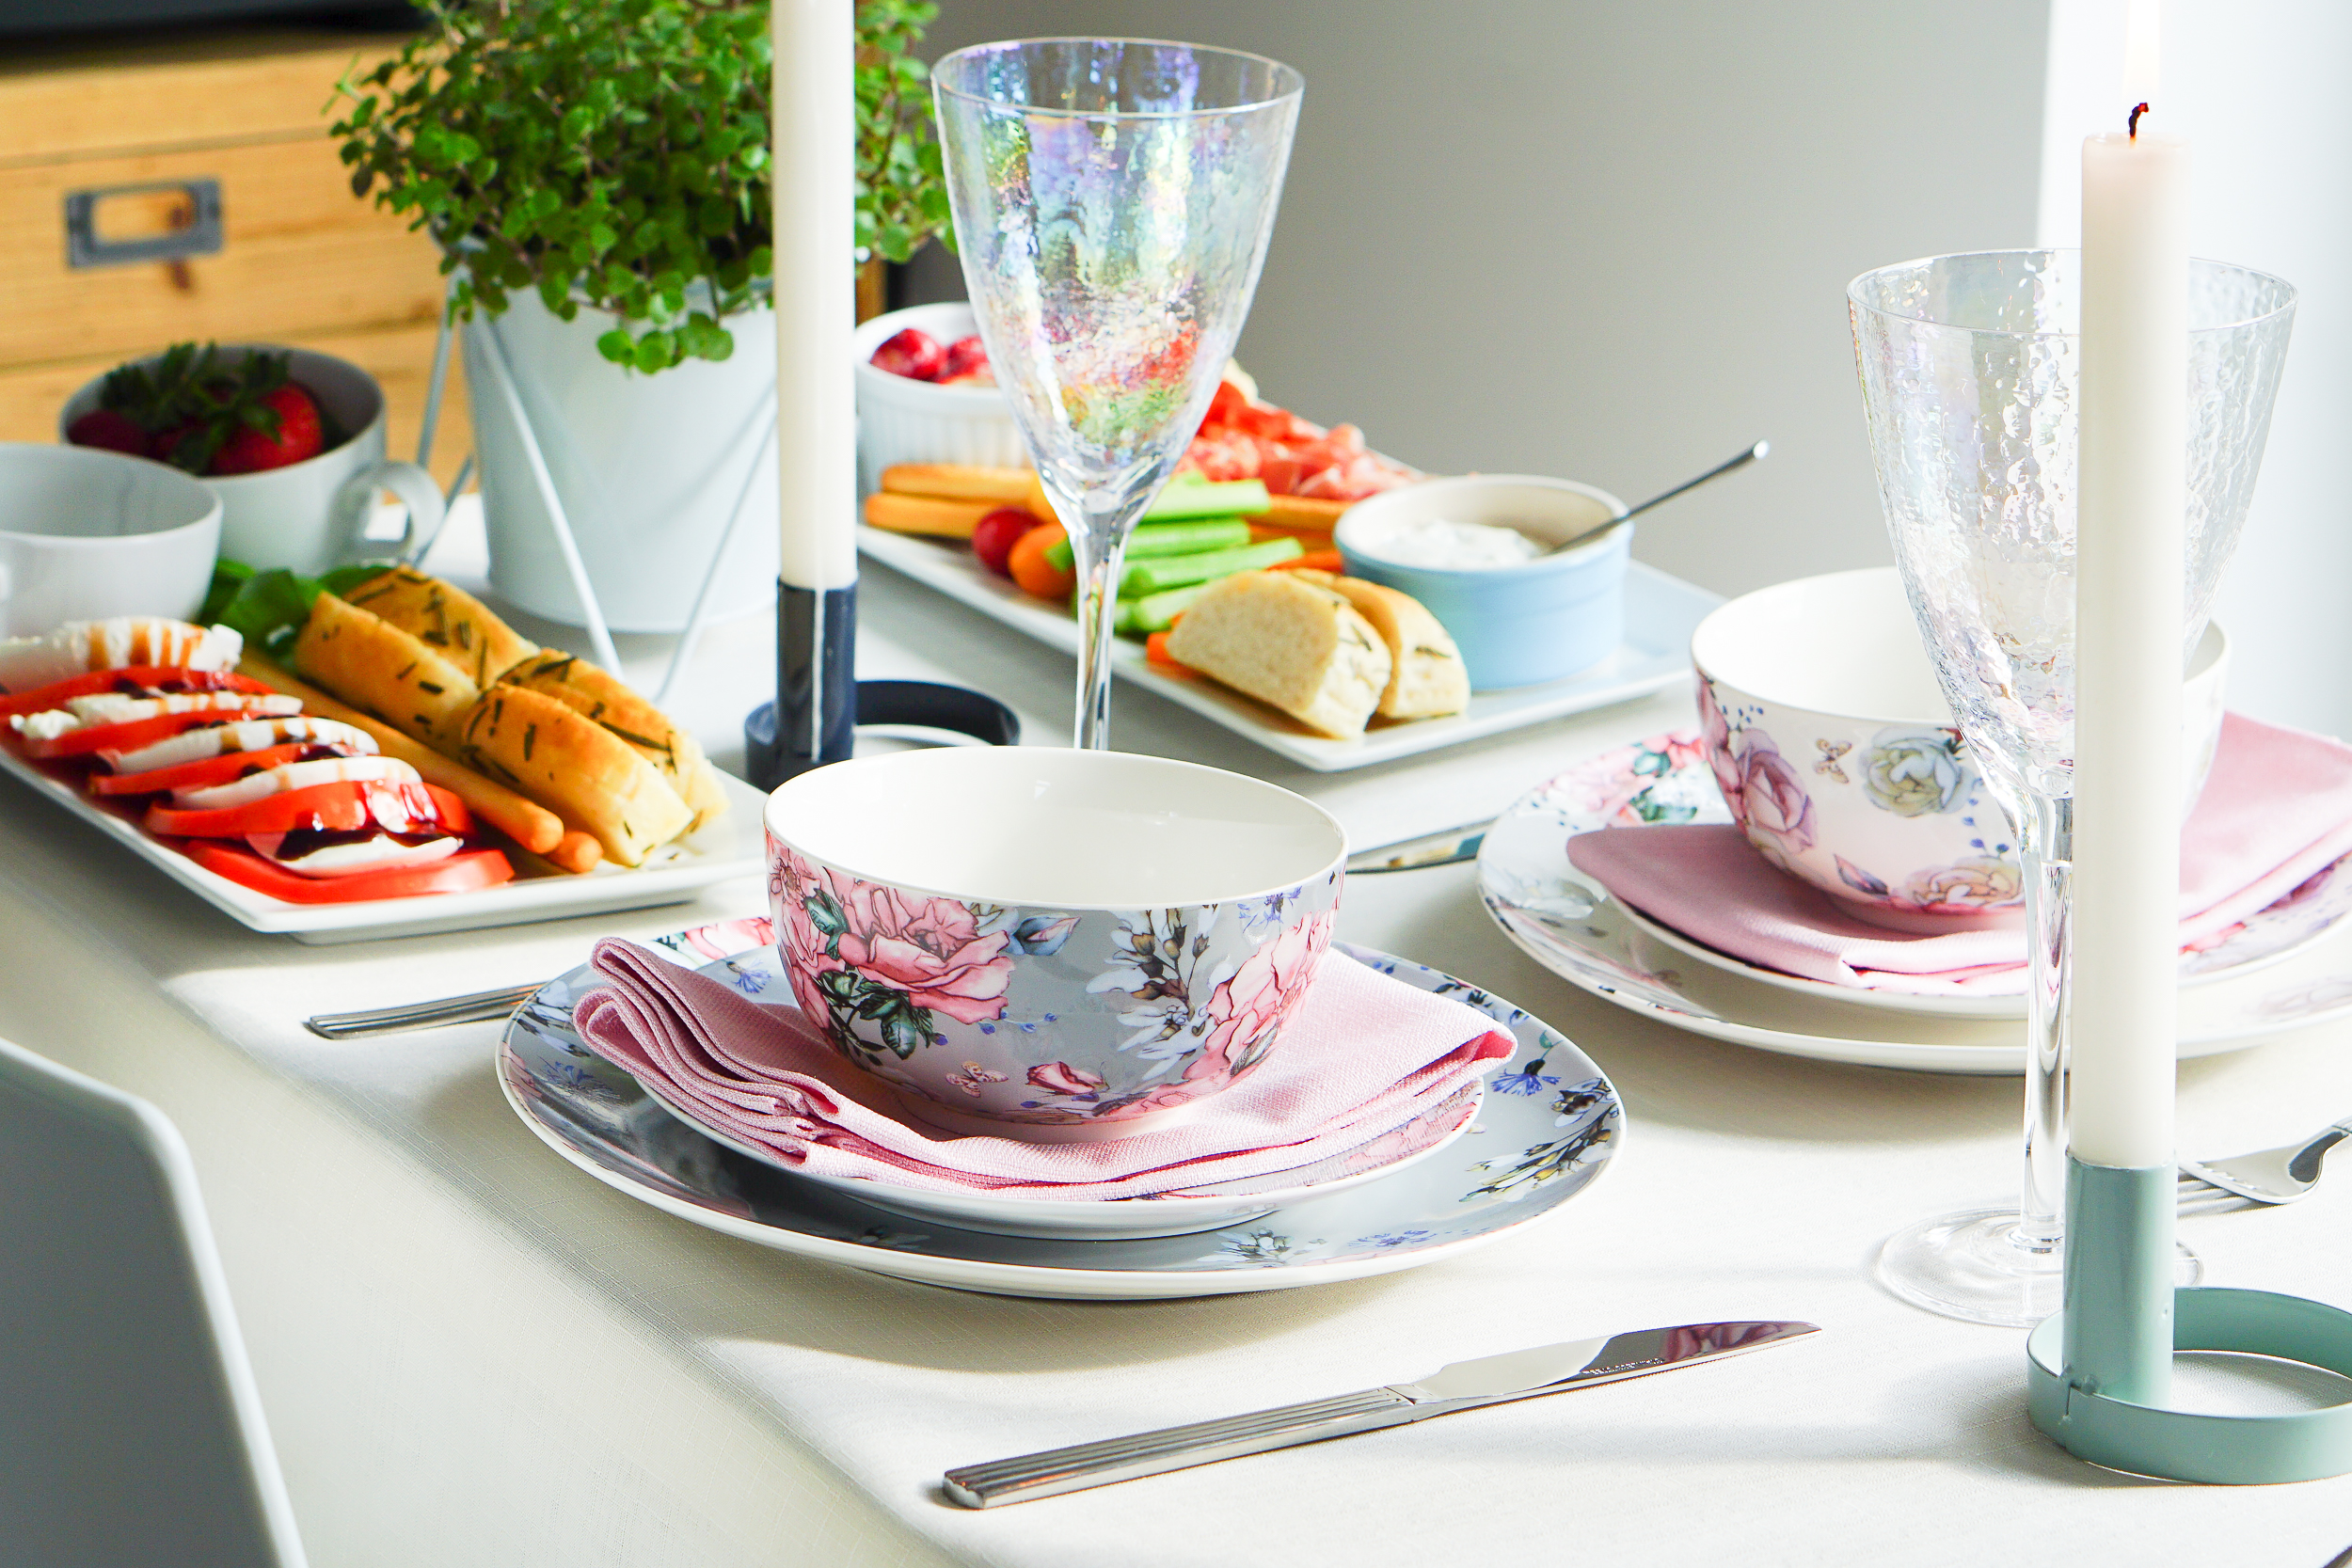 Celebrate the bank holiday weekend with a chic and simple supper with friends